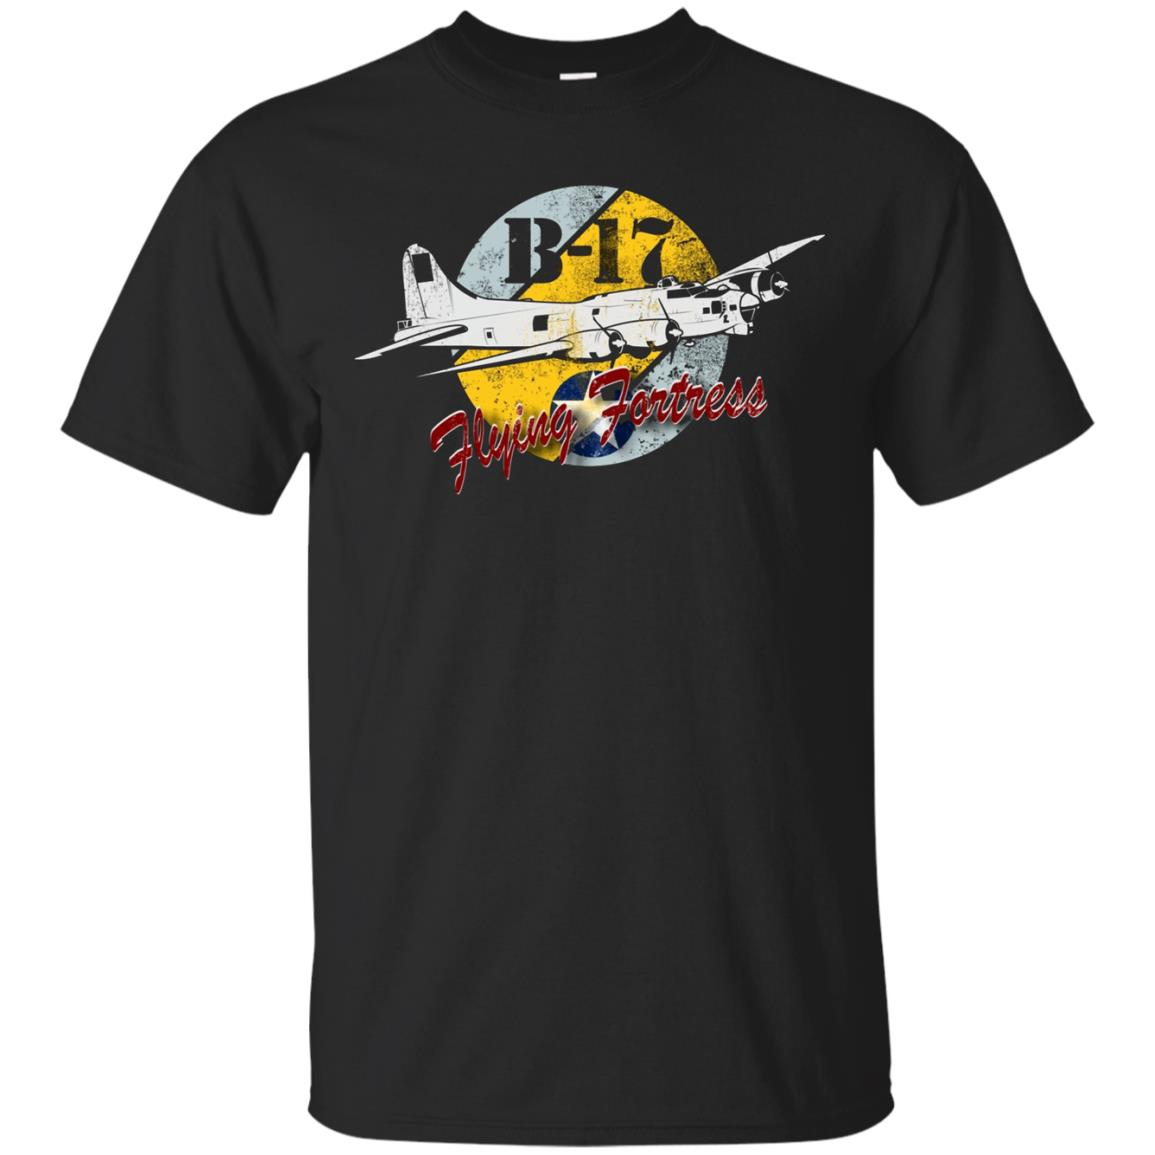 B-17 Flying Fortress Bomber WW2 Airplane T shirt